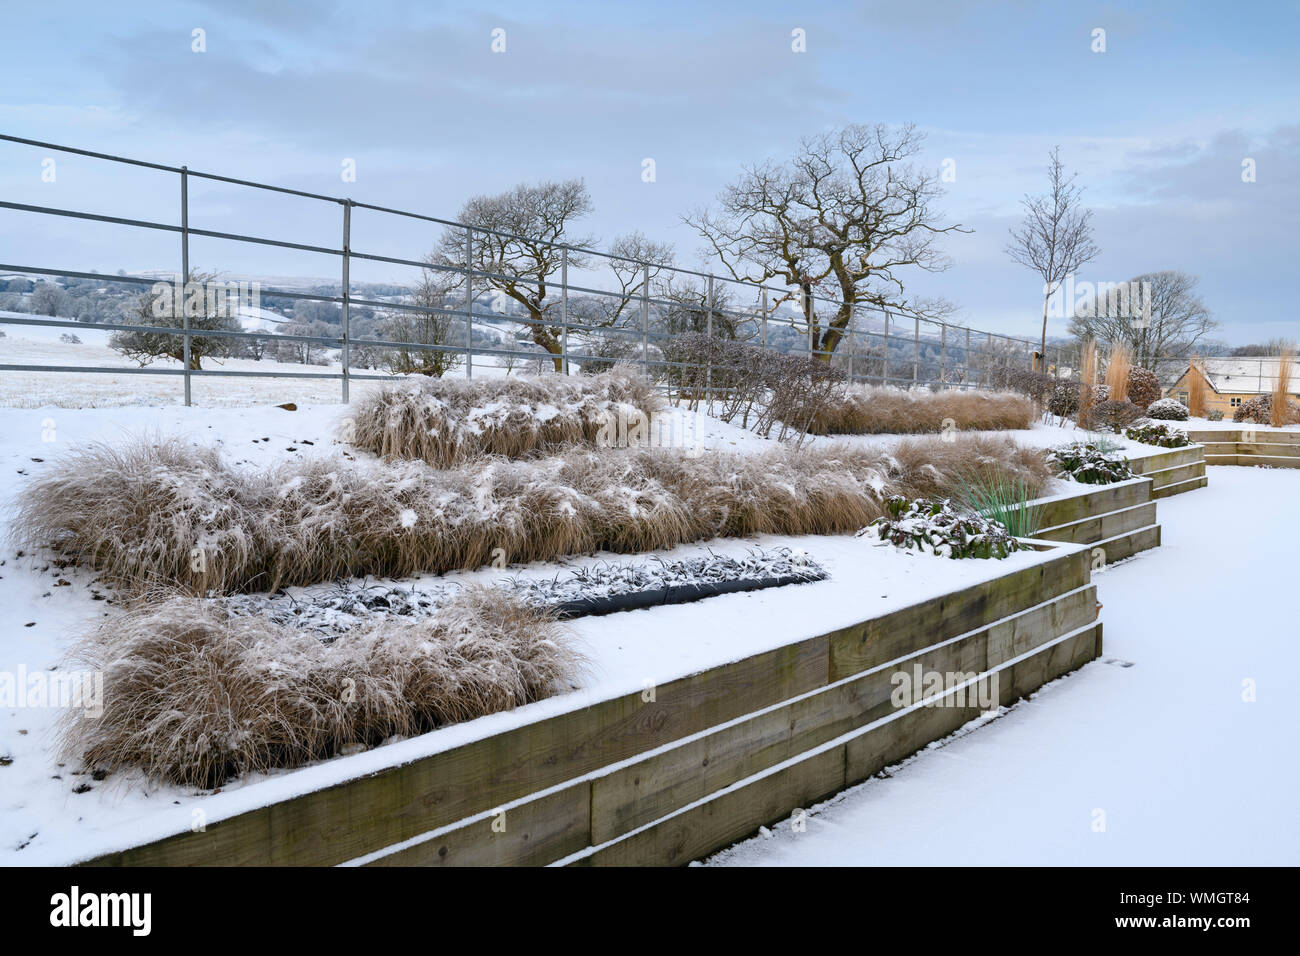 Stylish, contemporary design, landscaping & planting on wooden raised beds (grasses in lines) - snow covered winter garden, Yorkshire, England, UK. Stock Photo